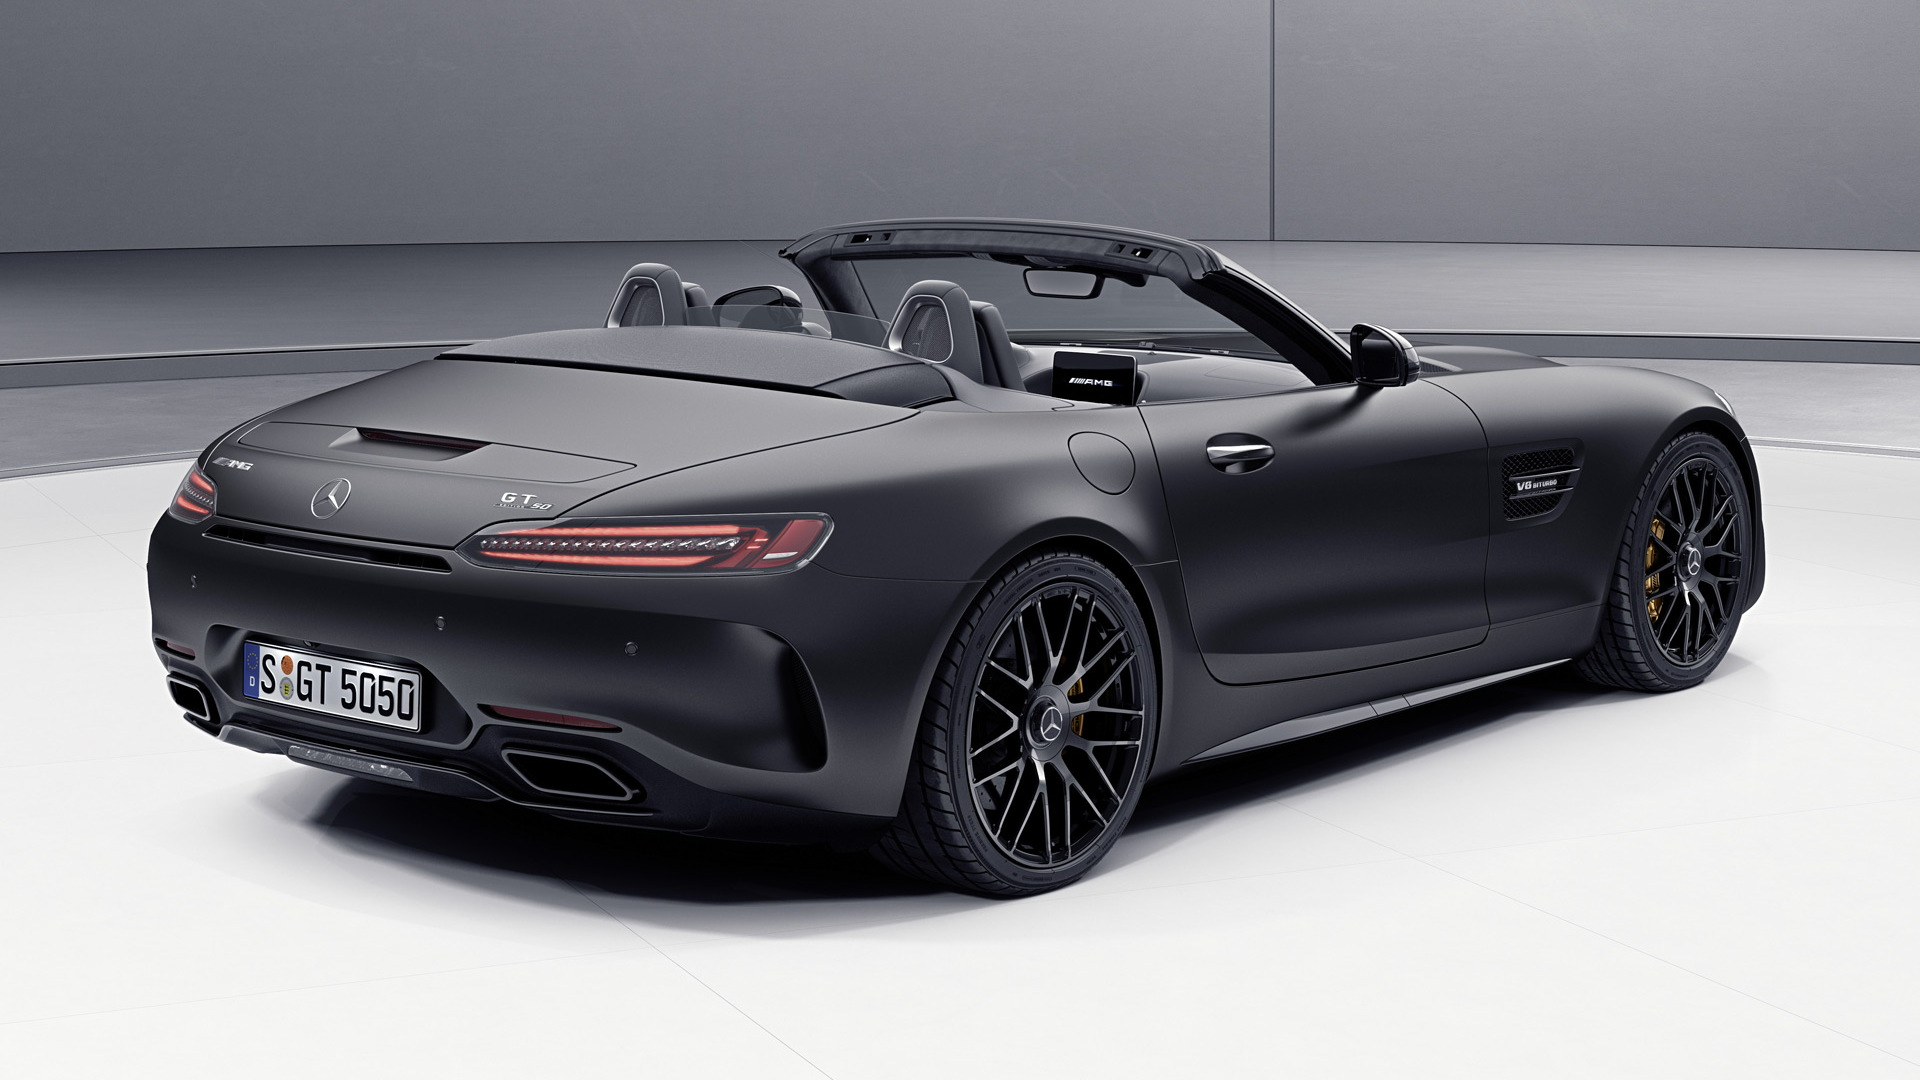 Mercedes Amg Gt C Roadster 2017 Mercedes Amg Gt C Roadster Edition 50 To Debut In Geneva